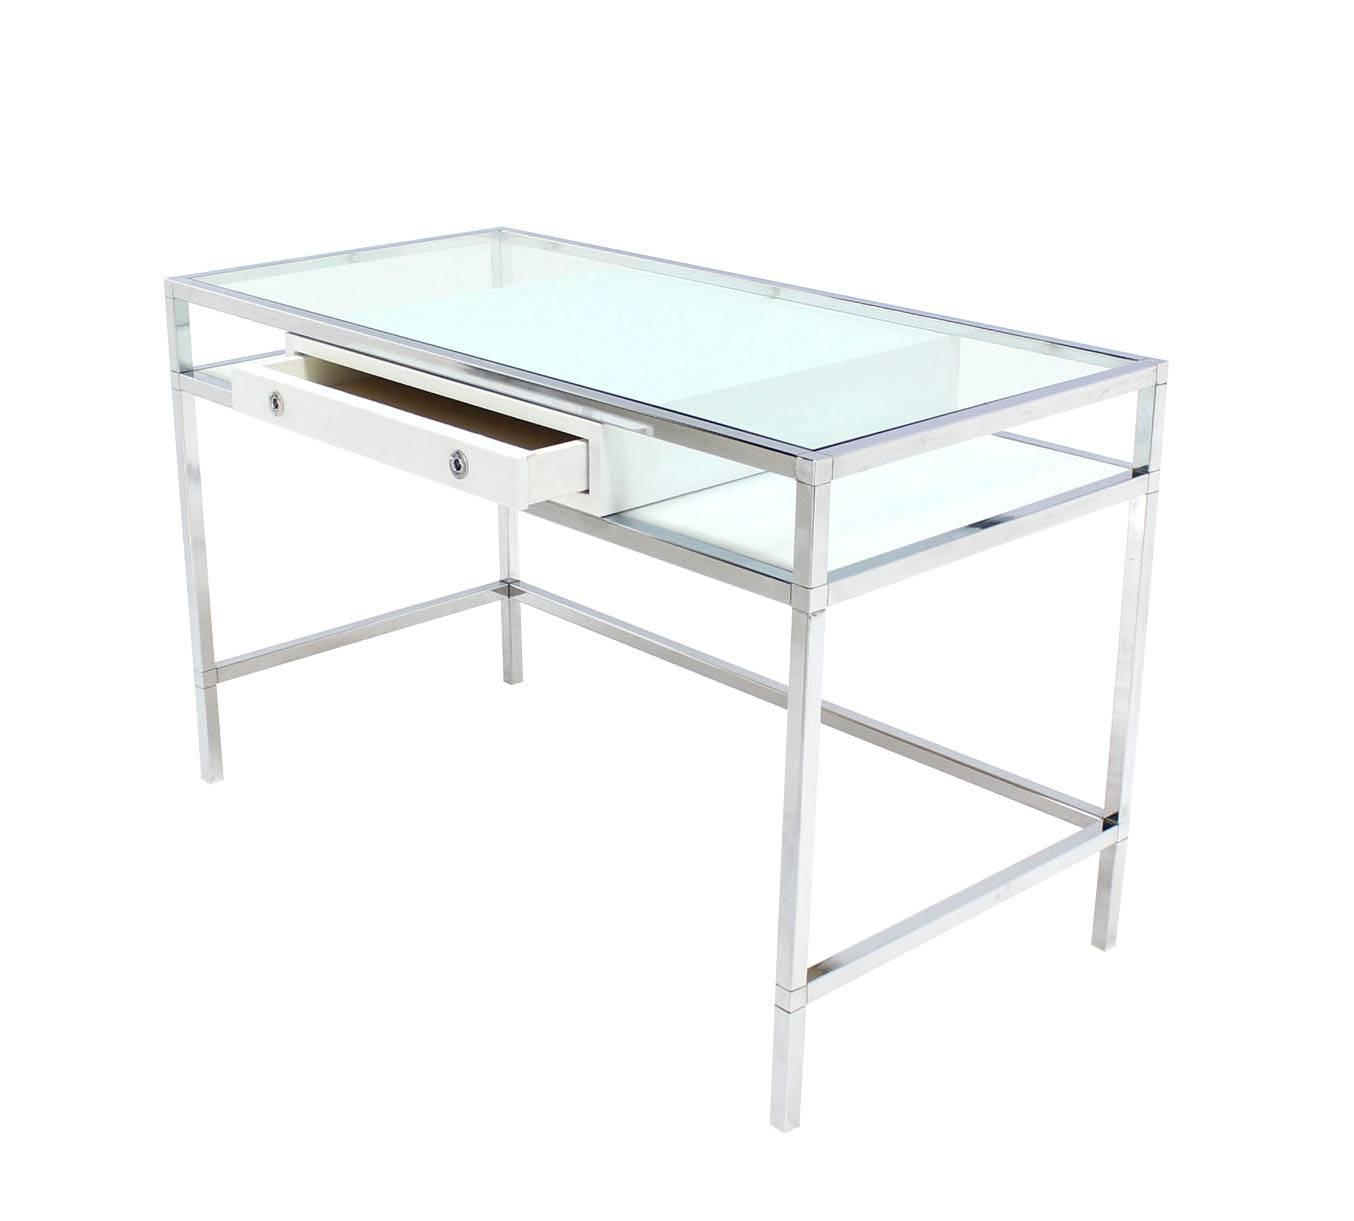 Chrome And Glass Onedrawer Writing Table Desk At 1stdibs. Metal Hamper. Stone Fireplace Pictures. Lowes New Hartford Ny. Brick Patio Designs. Vanity Faucets. Home Designs Ideas. Accent Table. Maids In Black Dc